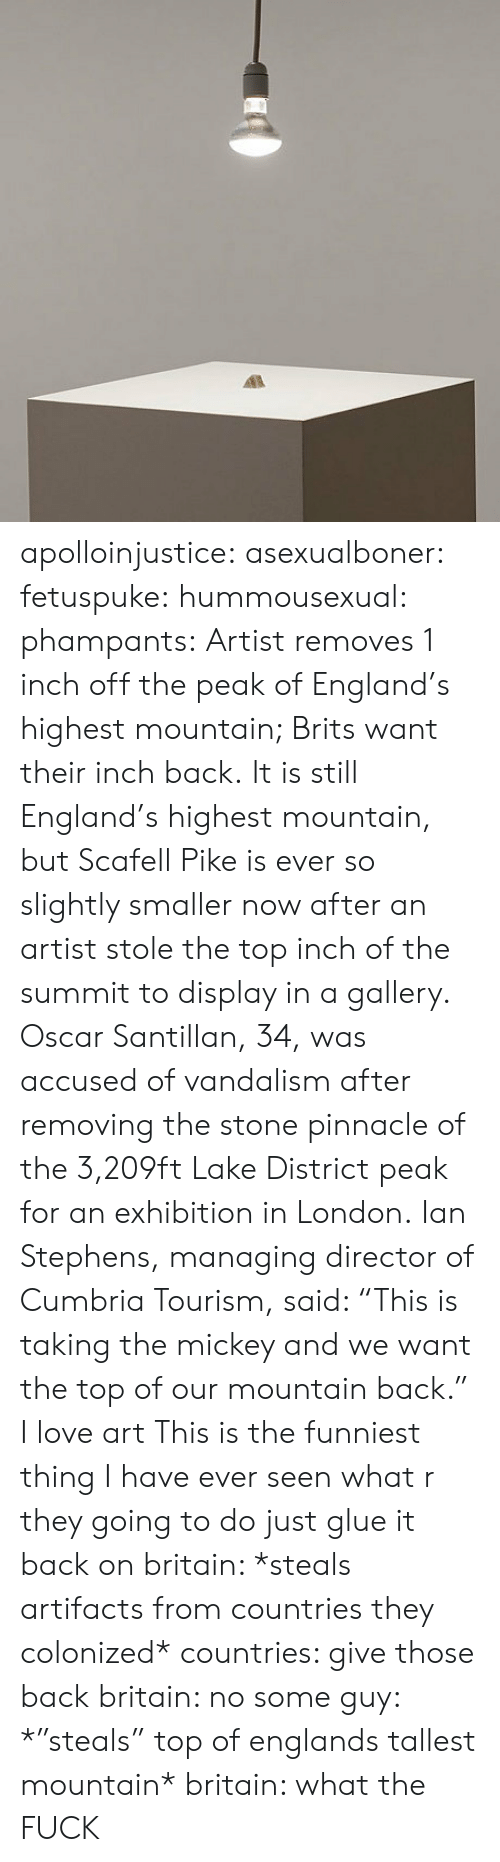 "Taking The Mickey: apolloinjustice:  asexualboner:  fetuspuke:   hummousexual:   phampants:   Artist removes 1 inch off the peak of England's highest mountain; Brits want their inch back. It is still England's highest mountain, but Scafell Pike is ever so slightly smaller now after an artist stole the top inch of the summit to display in a gallery. Oscar Santillan, 34, was accused of vandalism after removing the stone pinnacle of the 3,209ft Lake District peak for an exhibition in London. Ian Stephens, managing director of Cumbria Tourism, said: ""This is taking the mickey and we want the top of our mountain back.""   I love art   This is the funniest thing I have ever seen   what r they going to do just glue it back on   britain: *steals artifacts from countries they colonized* countries: give those back britain: no some guy: *""steals"" top of englands tallest mountain* britain: what the FUCK"